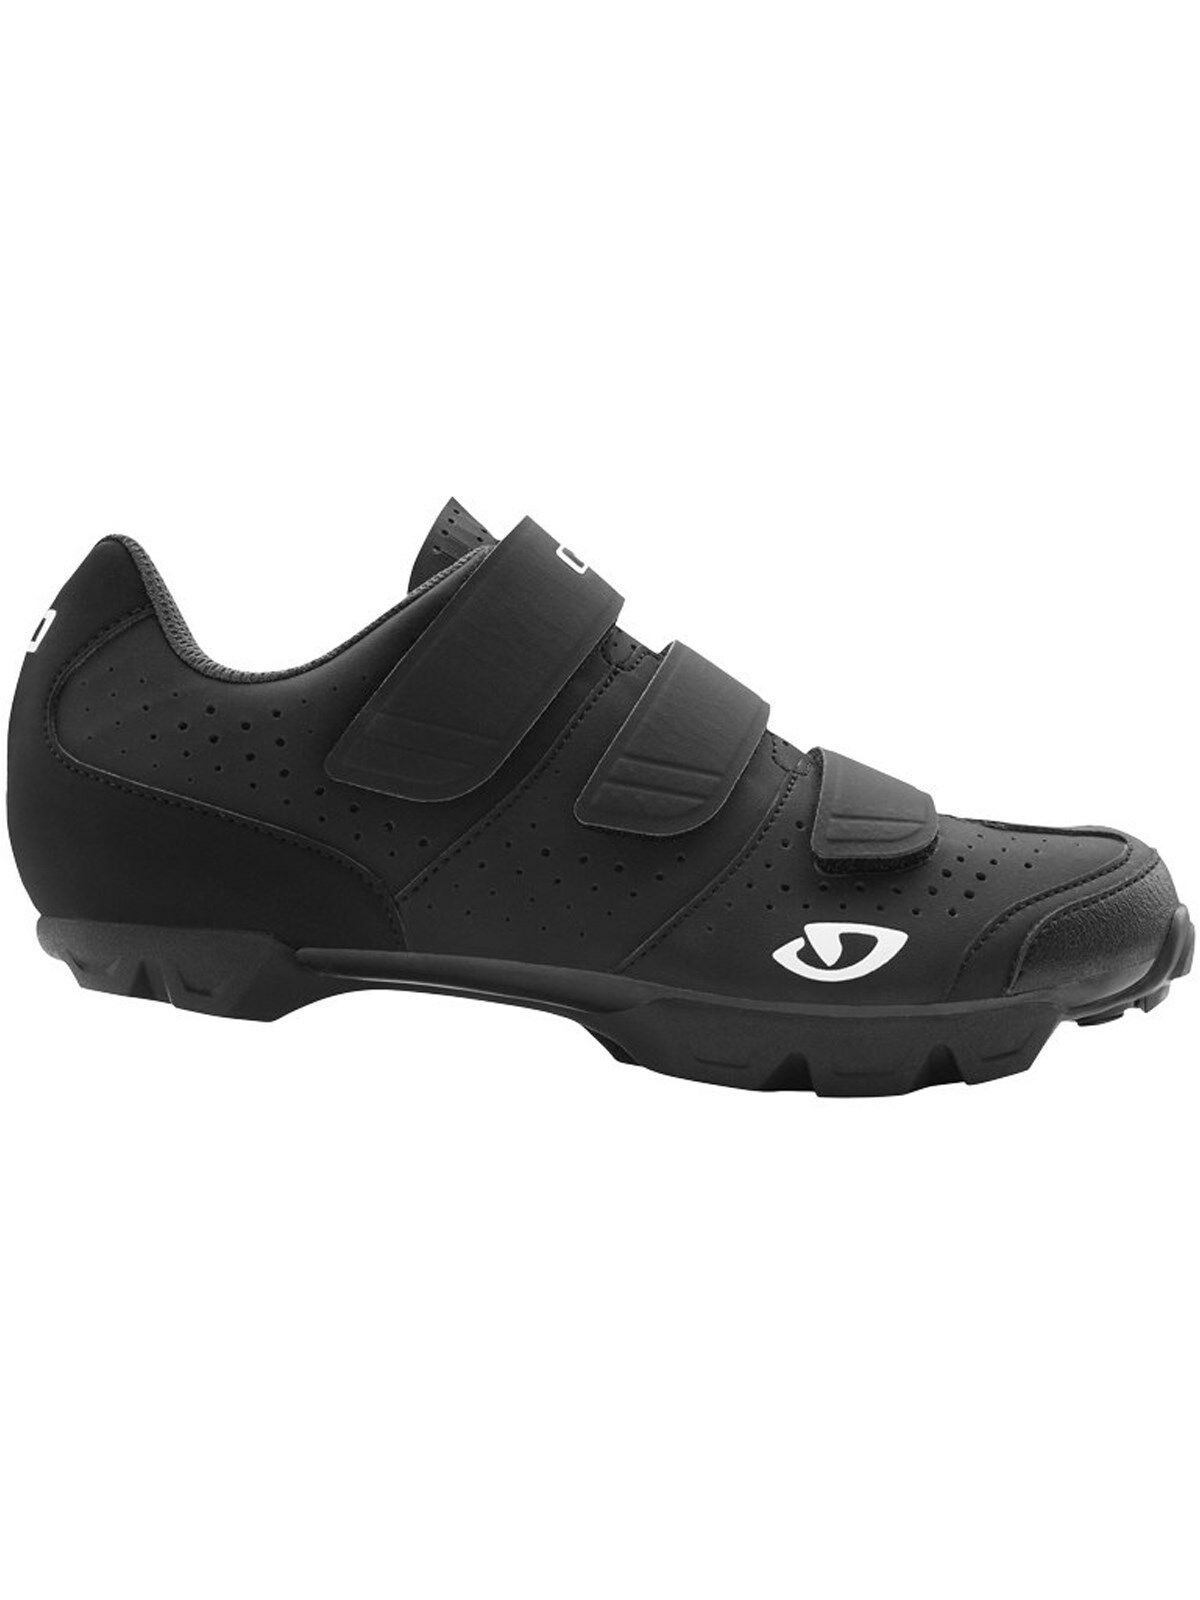 Giro Riela R Women's Cycling shoes Sizes 38-43